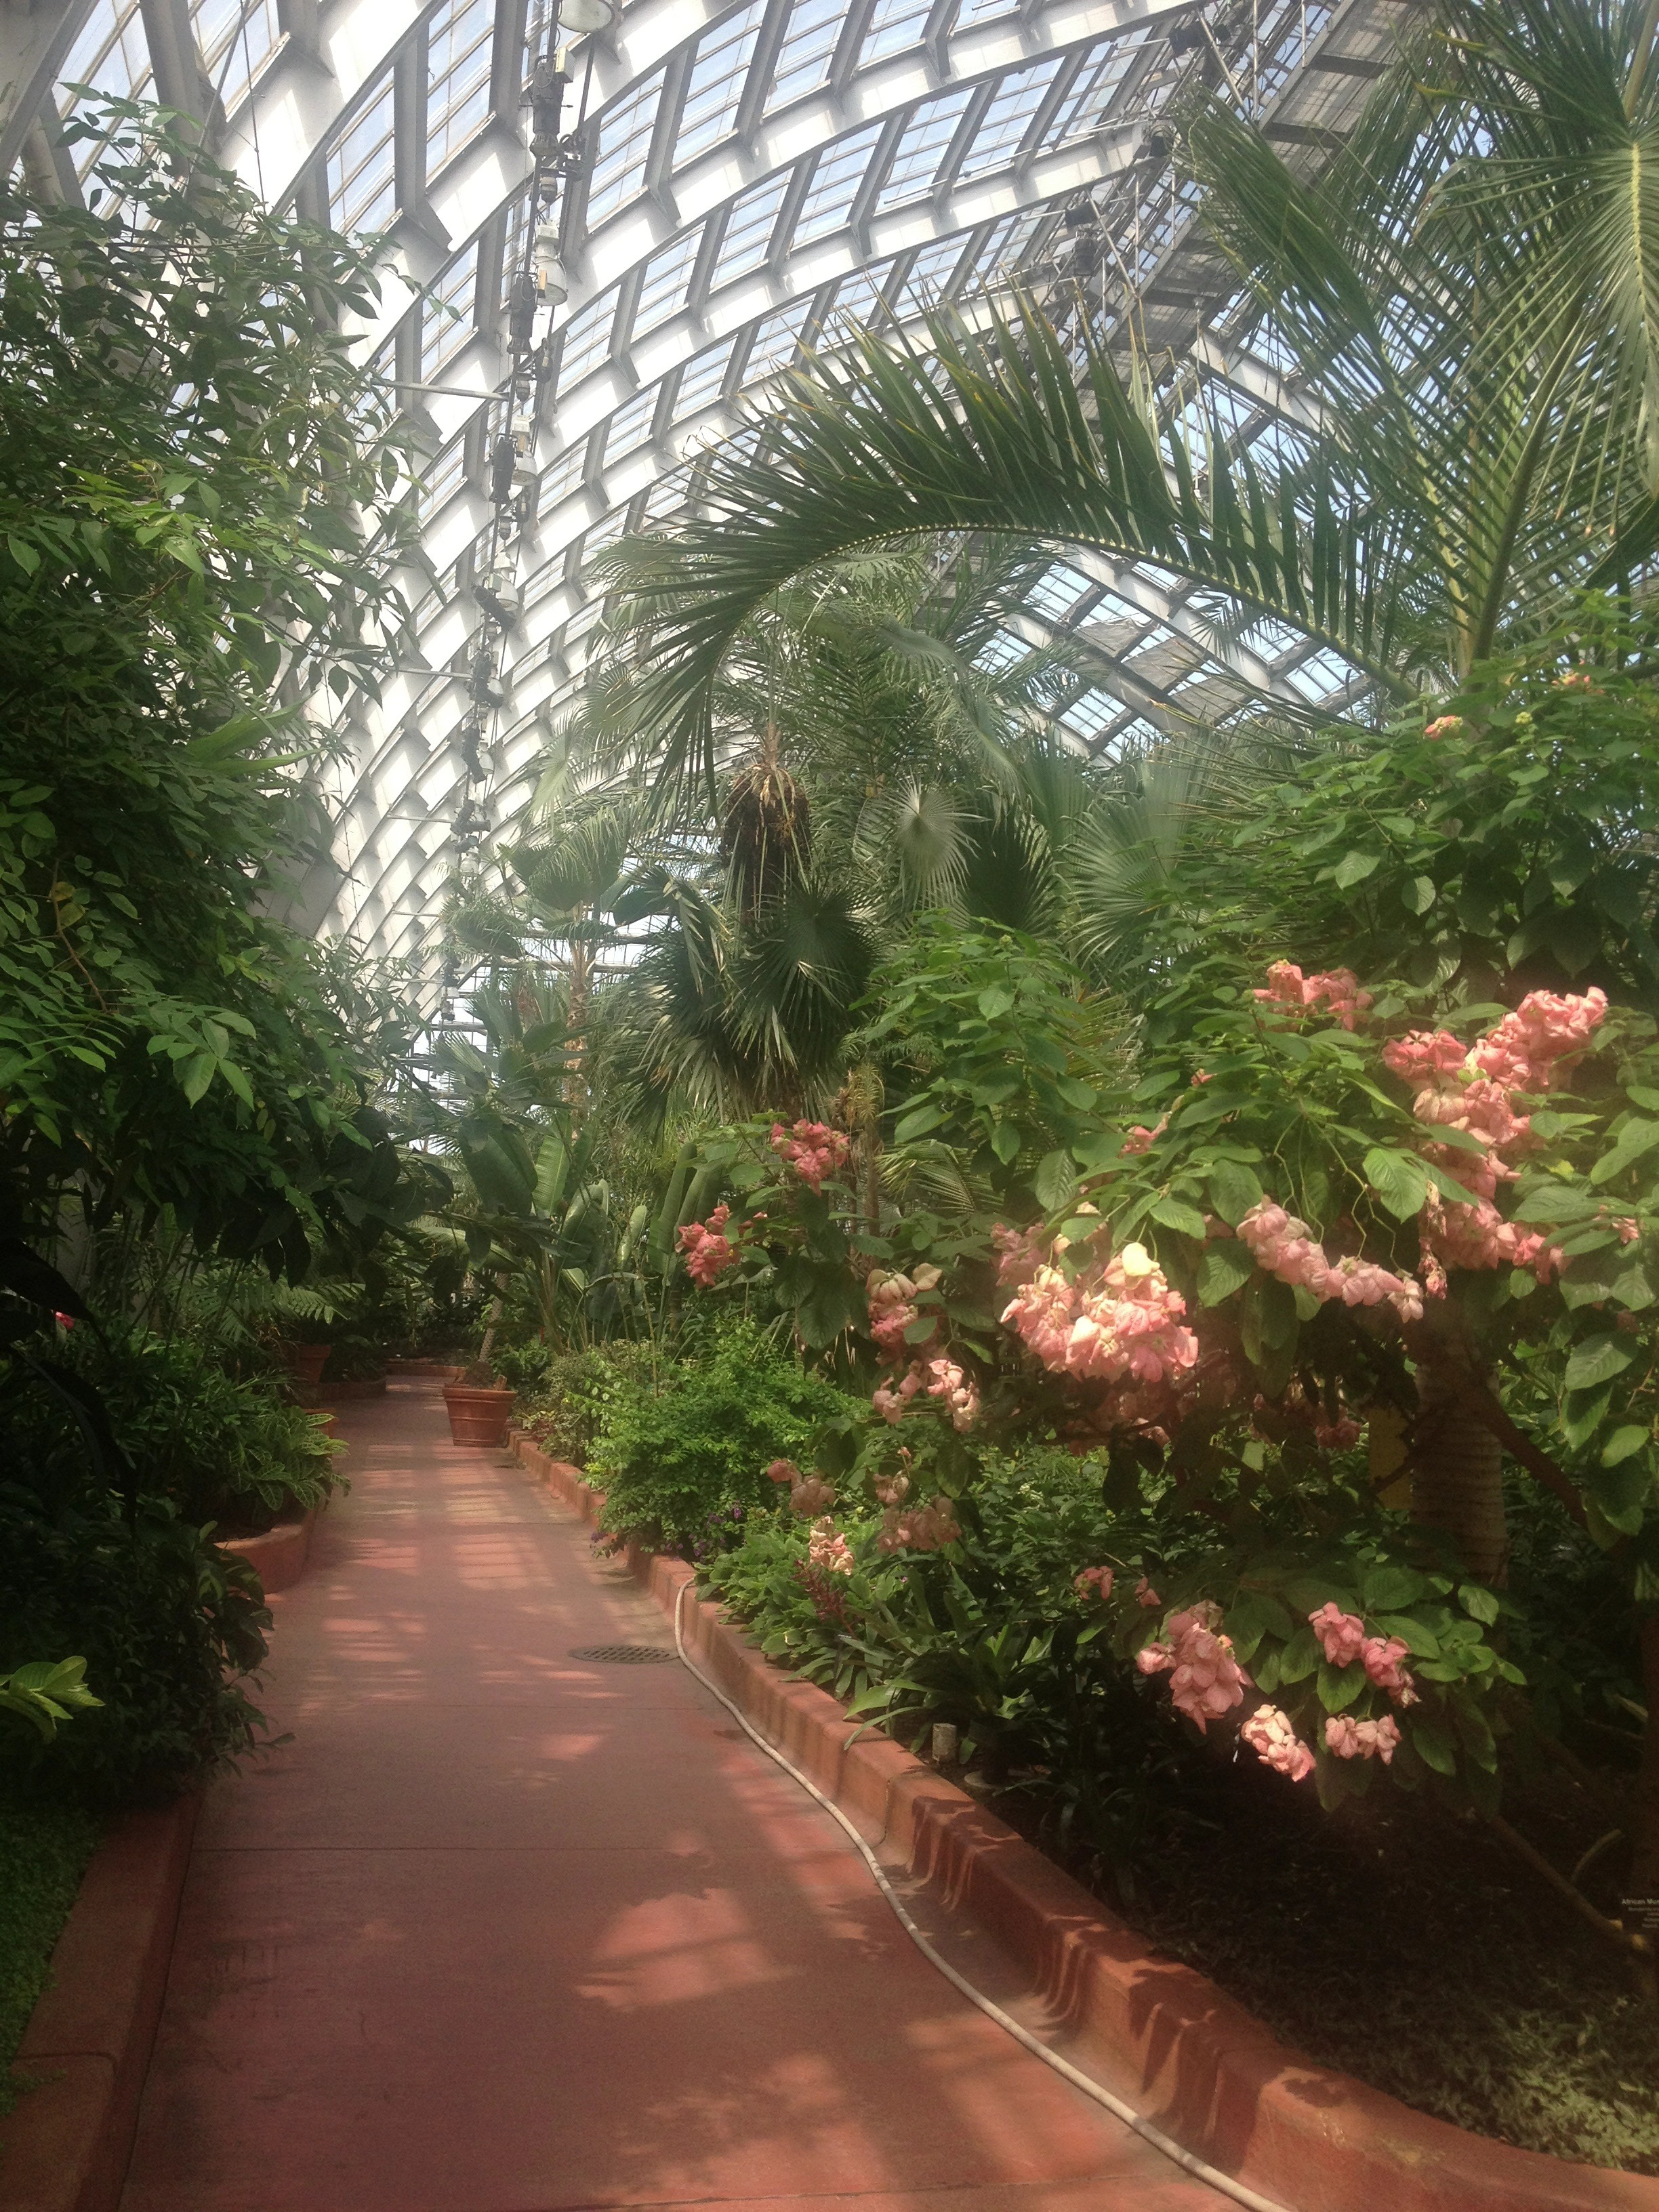 Hurray, The Garfield Park Conservatory!